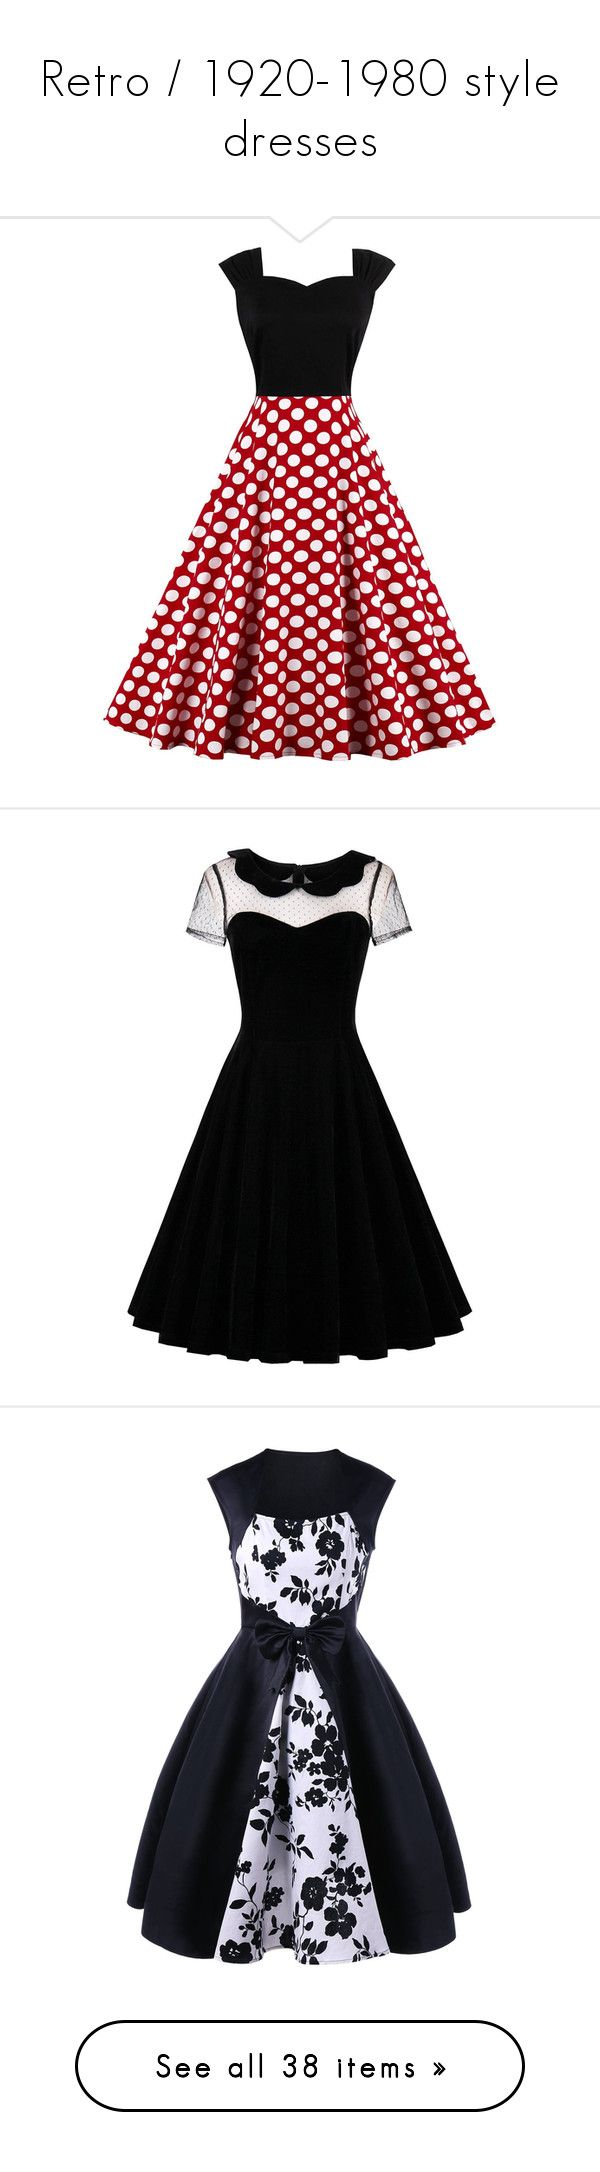 """Retro / 1920-1980 style dresses"" by kodanyx ❤ liked on Polyvore featuring dresses, red polka dot dress, polka dot print dress, dot dresses, sleeveless dress, high waist dress, lace panel dress, short sleeve dress, velvet dress and lace inset dress"